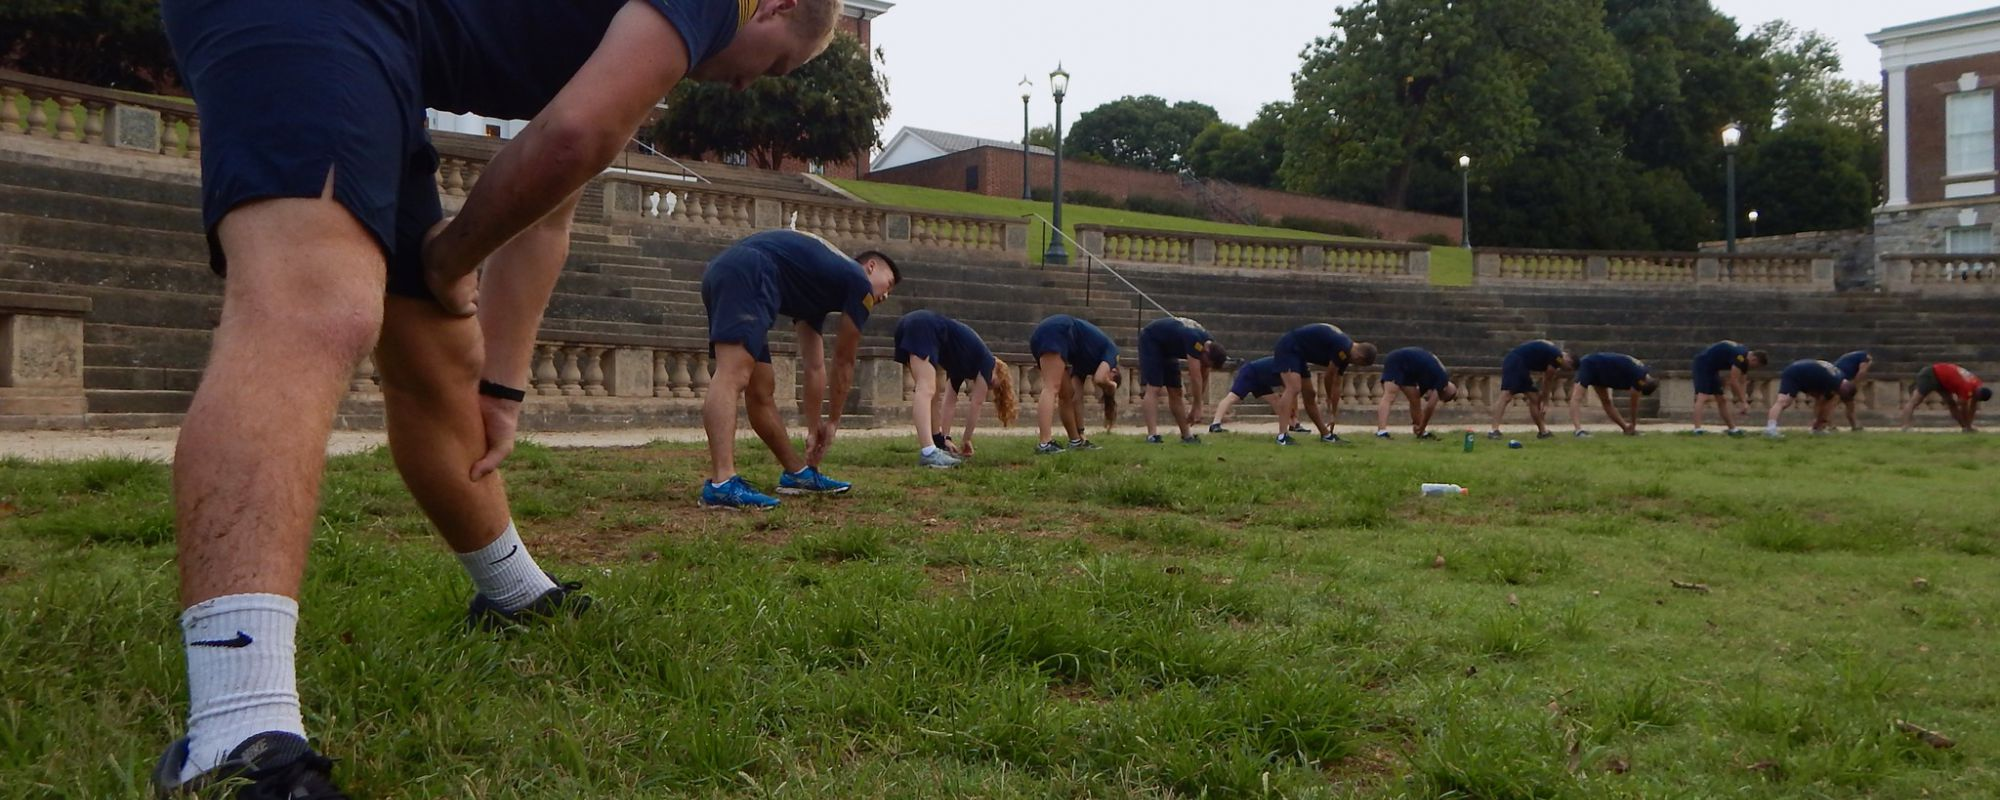 NROTC students exercising UVA lawn